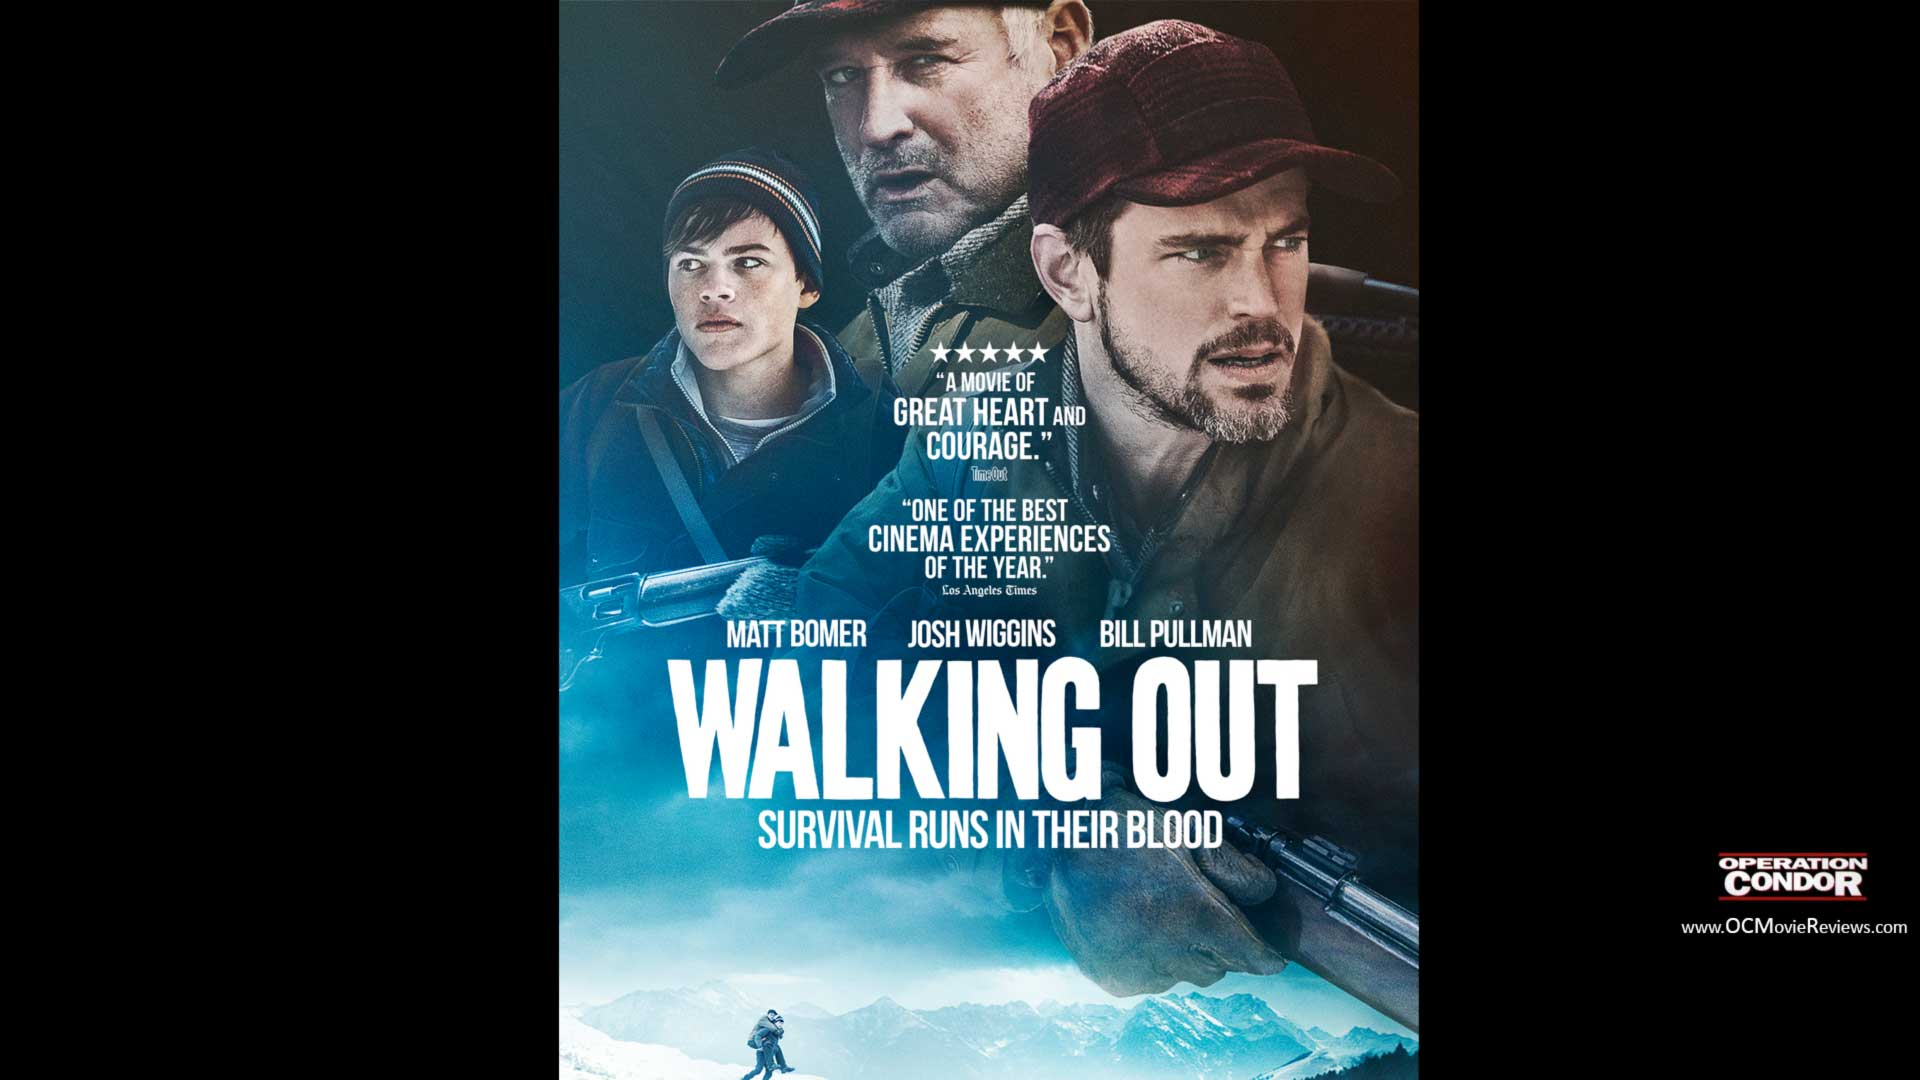 Walking Out Trailer - OC Movie Reviews - Movie Reviews, Movie News, Documentary Reviews, Short Films, Short Film Reviews, Trailers, Movie Trailers, Interviews, film reviews, film news, hollywood, indie films, documentaries